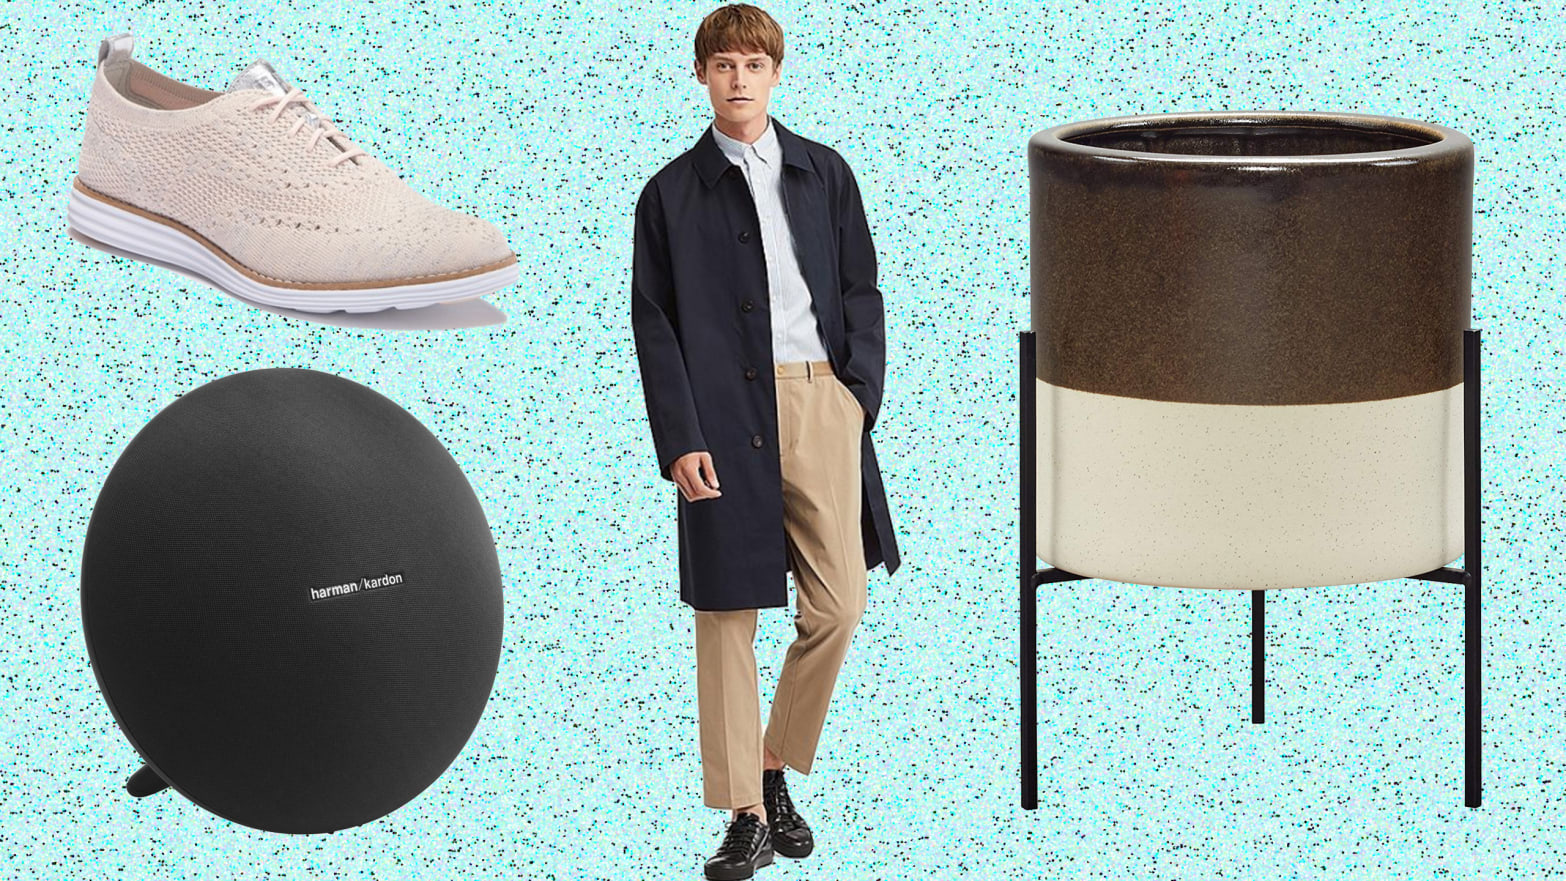 The 12 Best Things On Sale from Nordstrom Rack, Best Buy, Amazon, and More